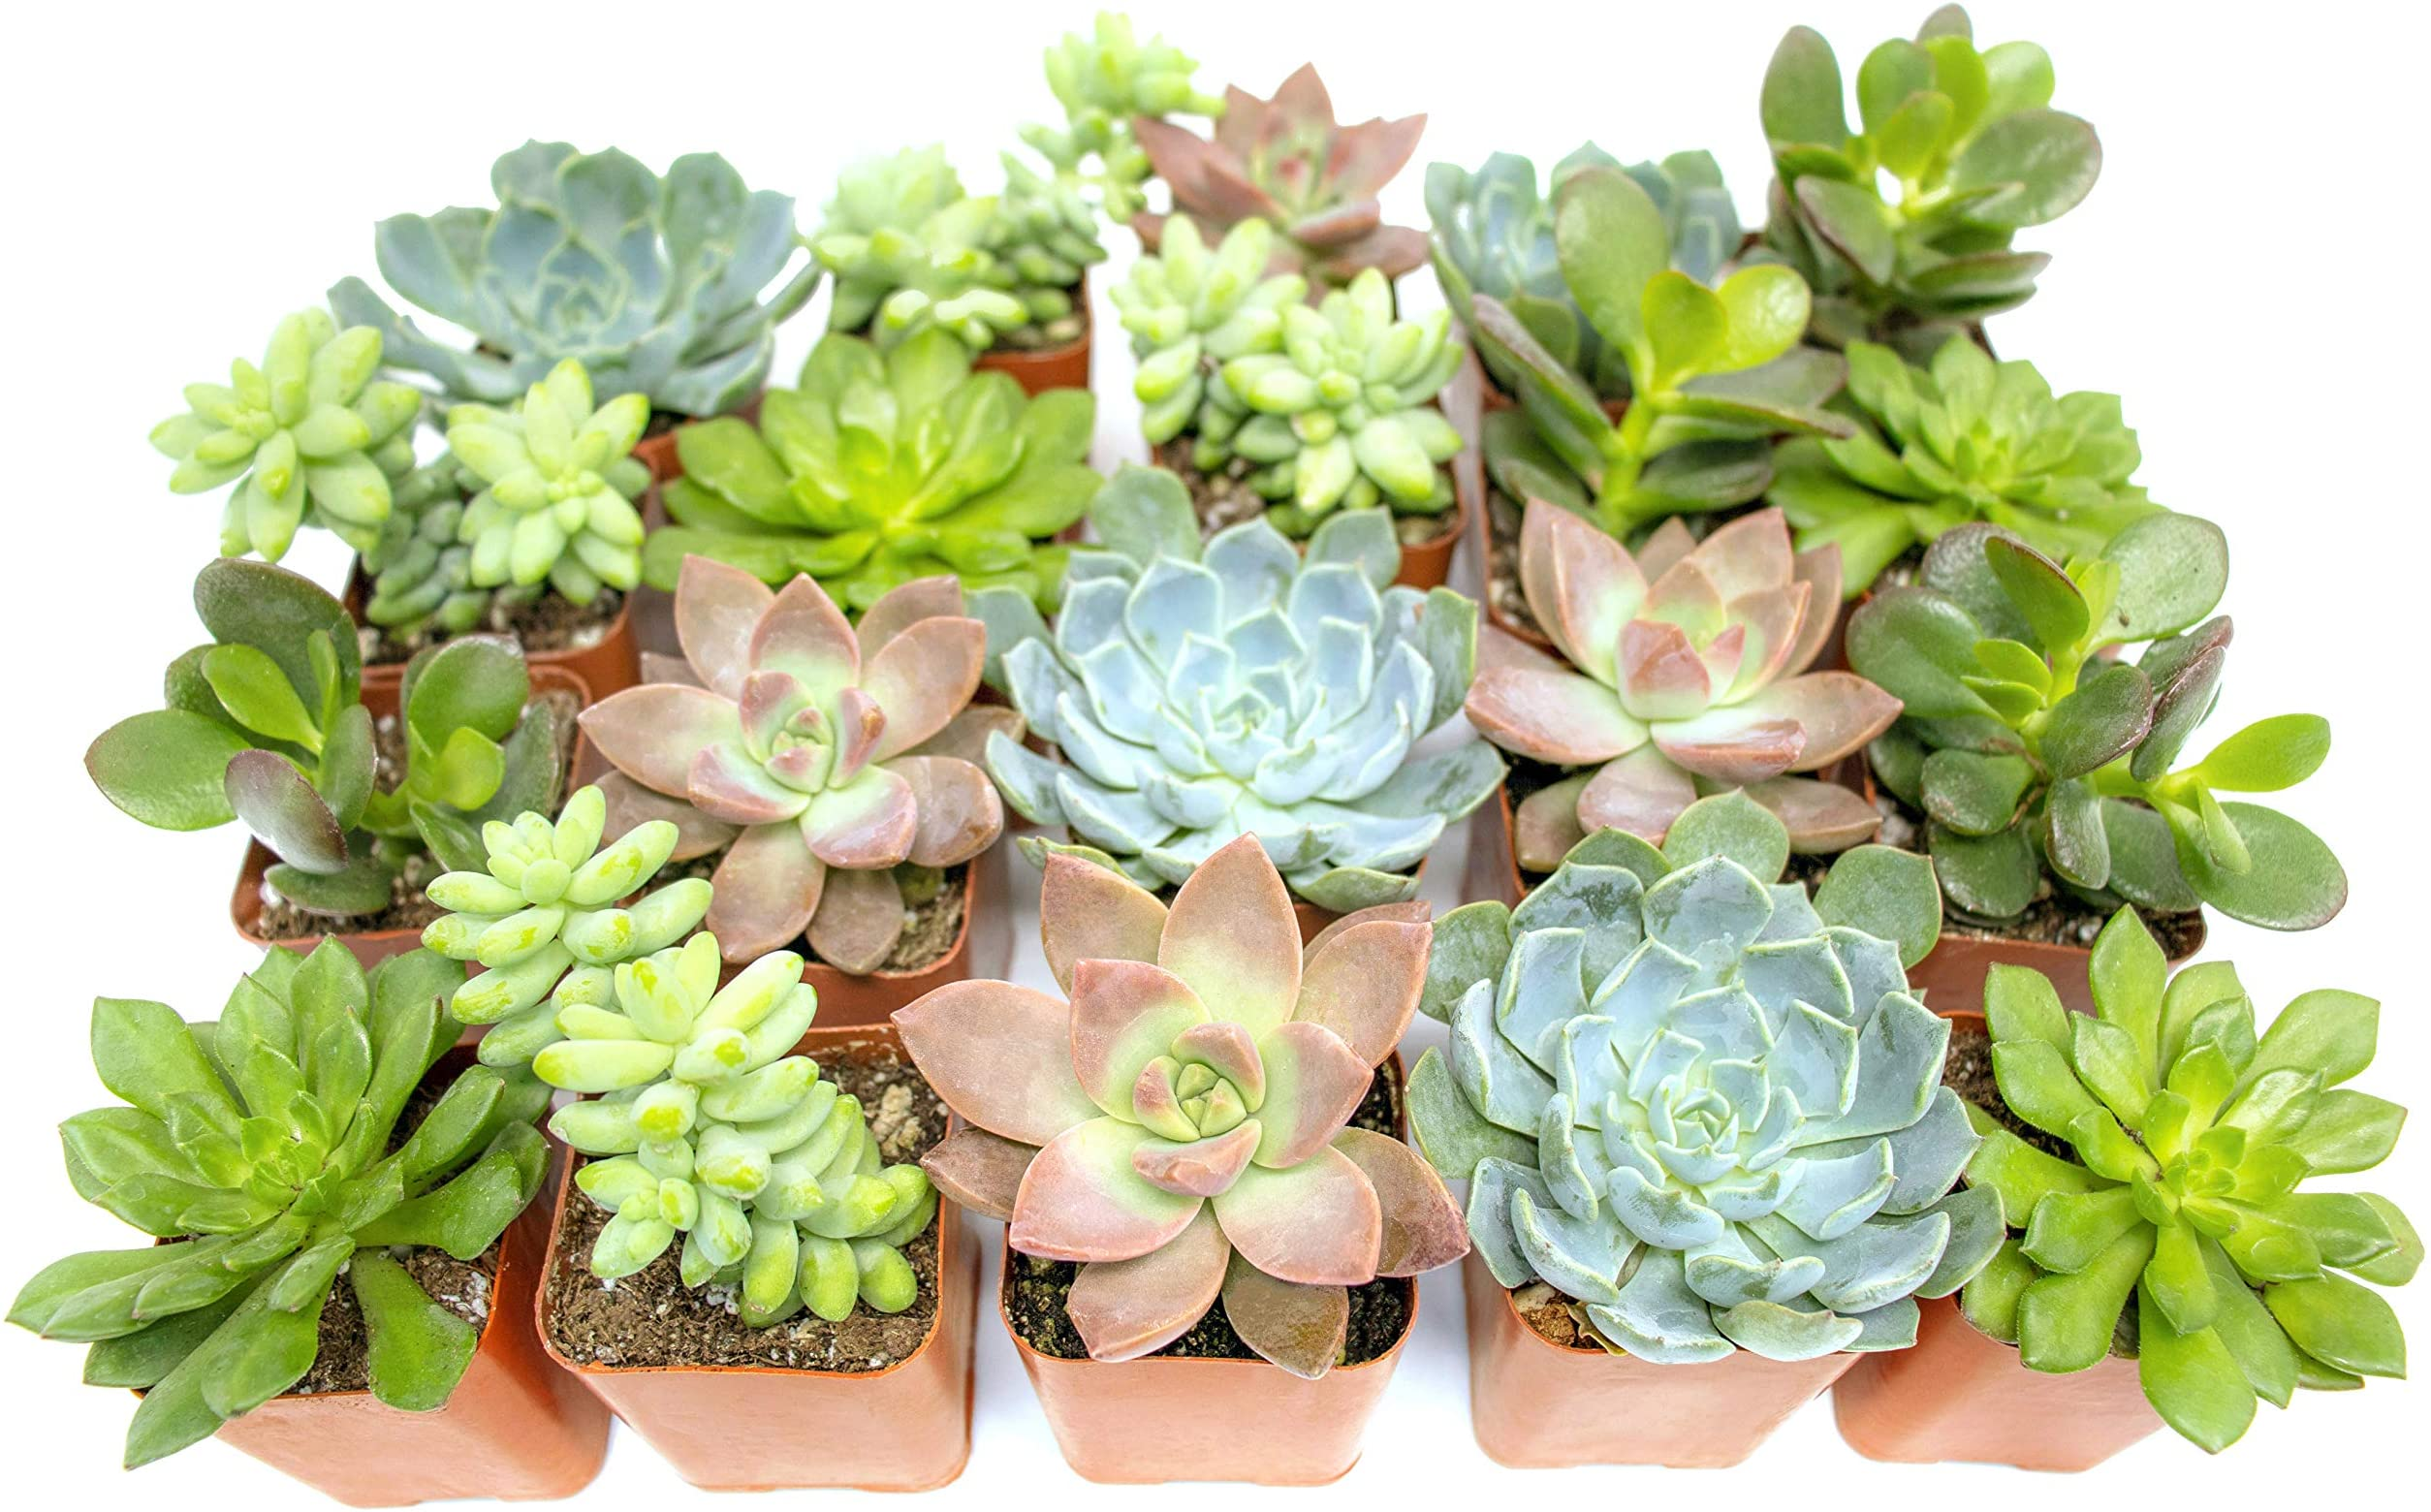 Amazon Com Succulent Plants 20 Pack Fully Rooted In Planter Pots With Soil Real Potted Succulents Plants Live Houseplants Unique Indoor Cacti Mix Cactus Decor By Plants For Pets Garden Outdoor